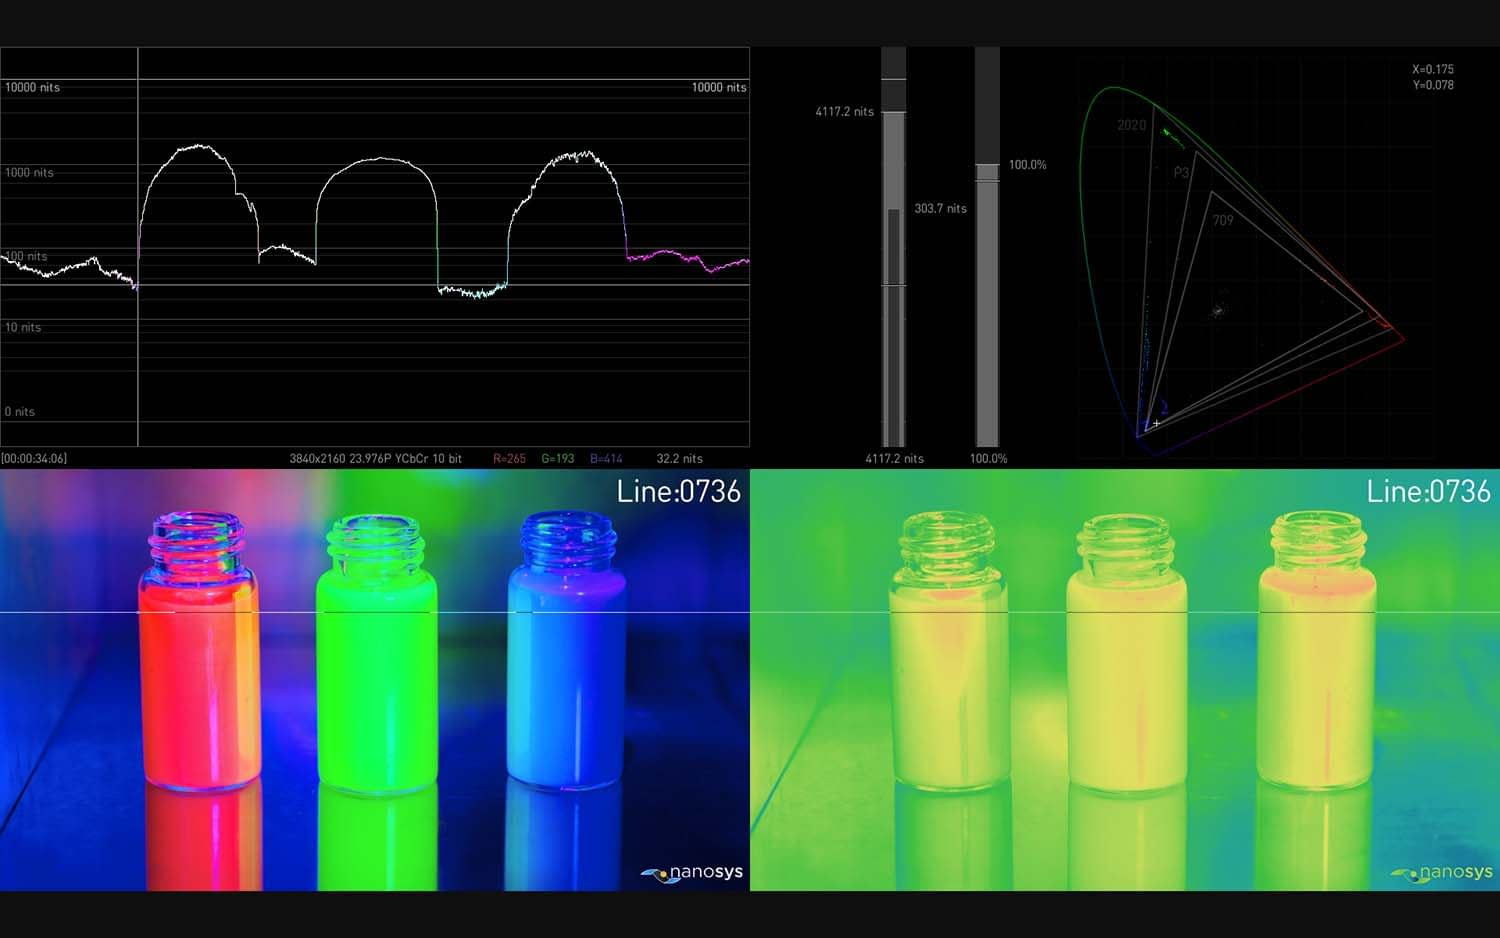 AJA HDR Image Analyzer 12G Extended Features